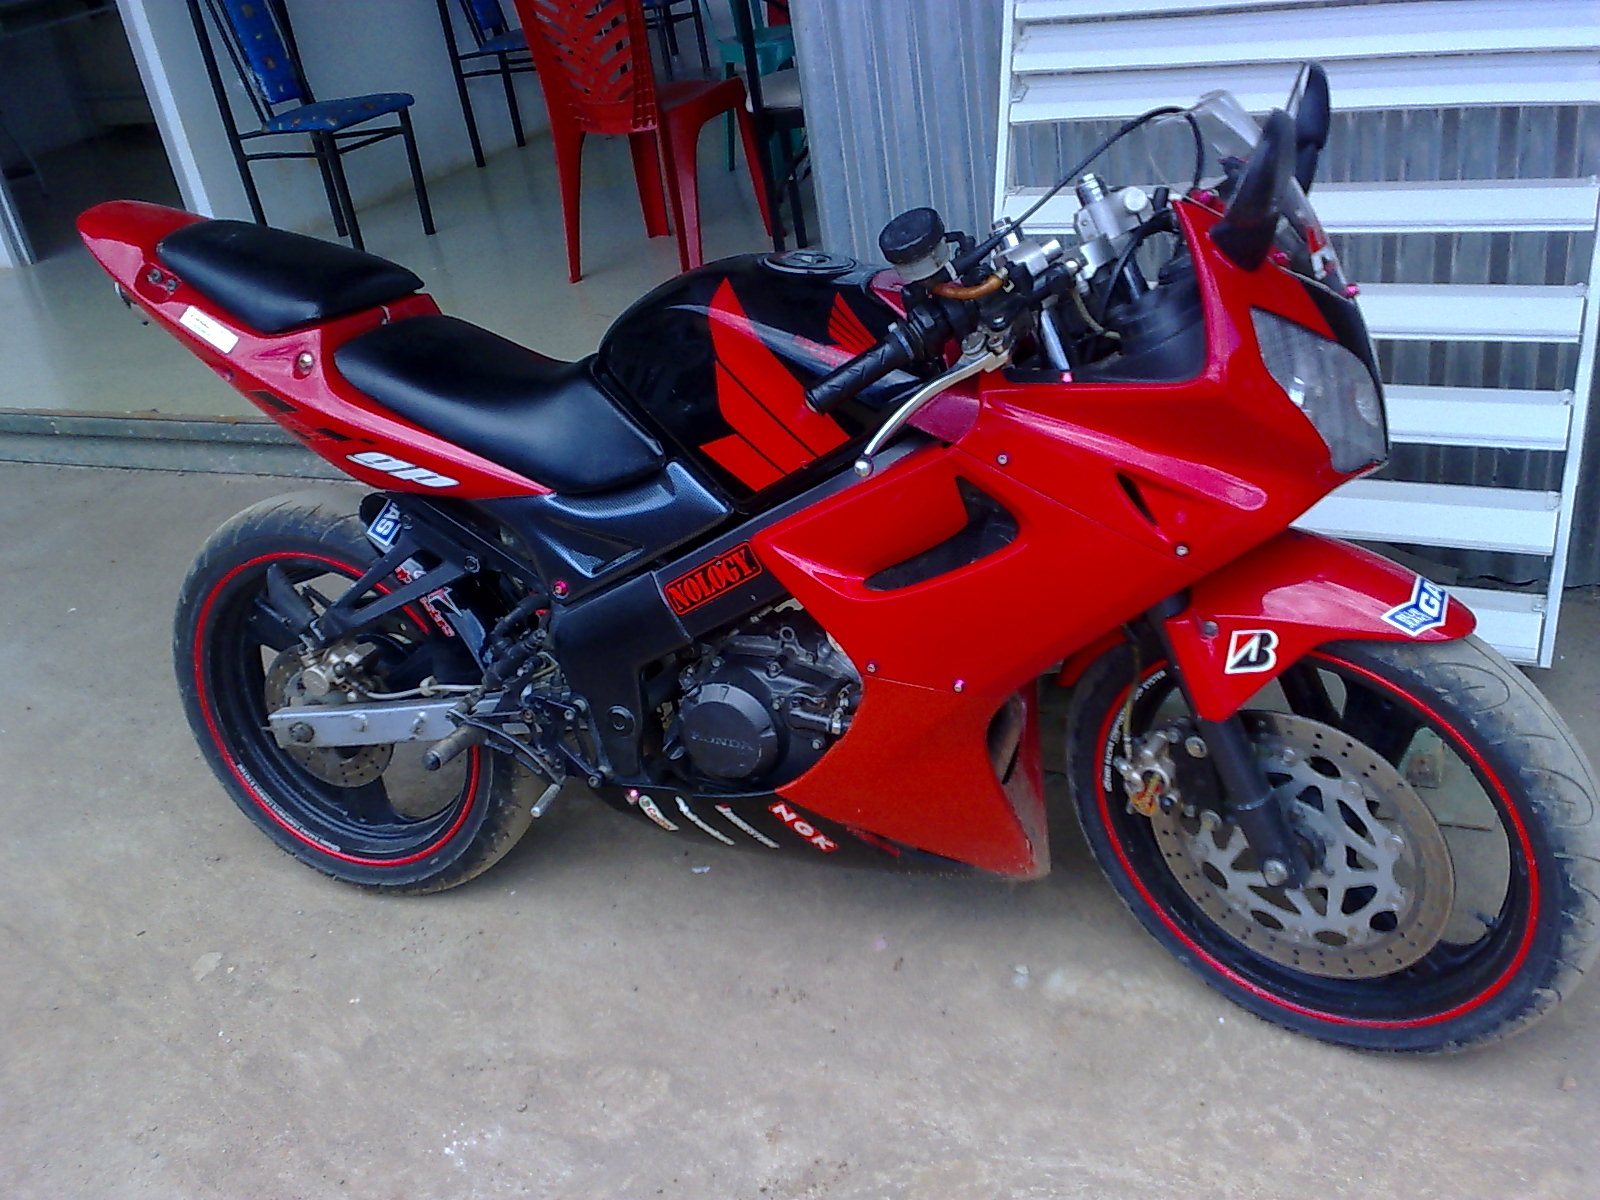 Modifikasi Full Fairing Honda Verza